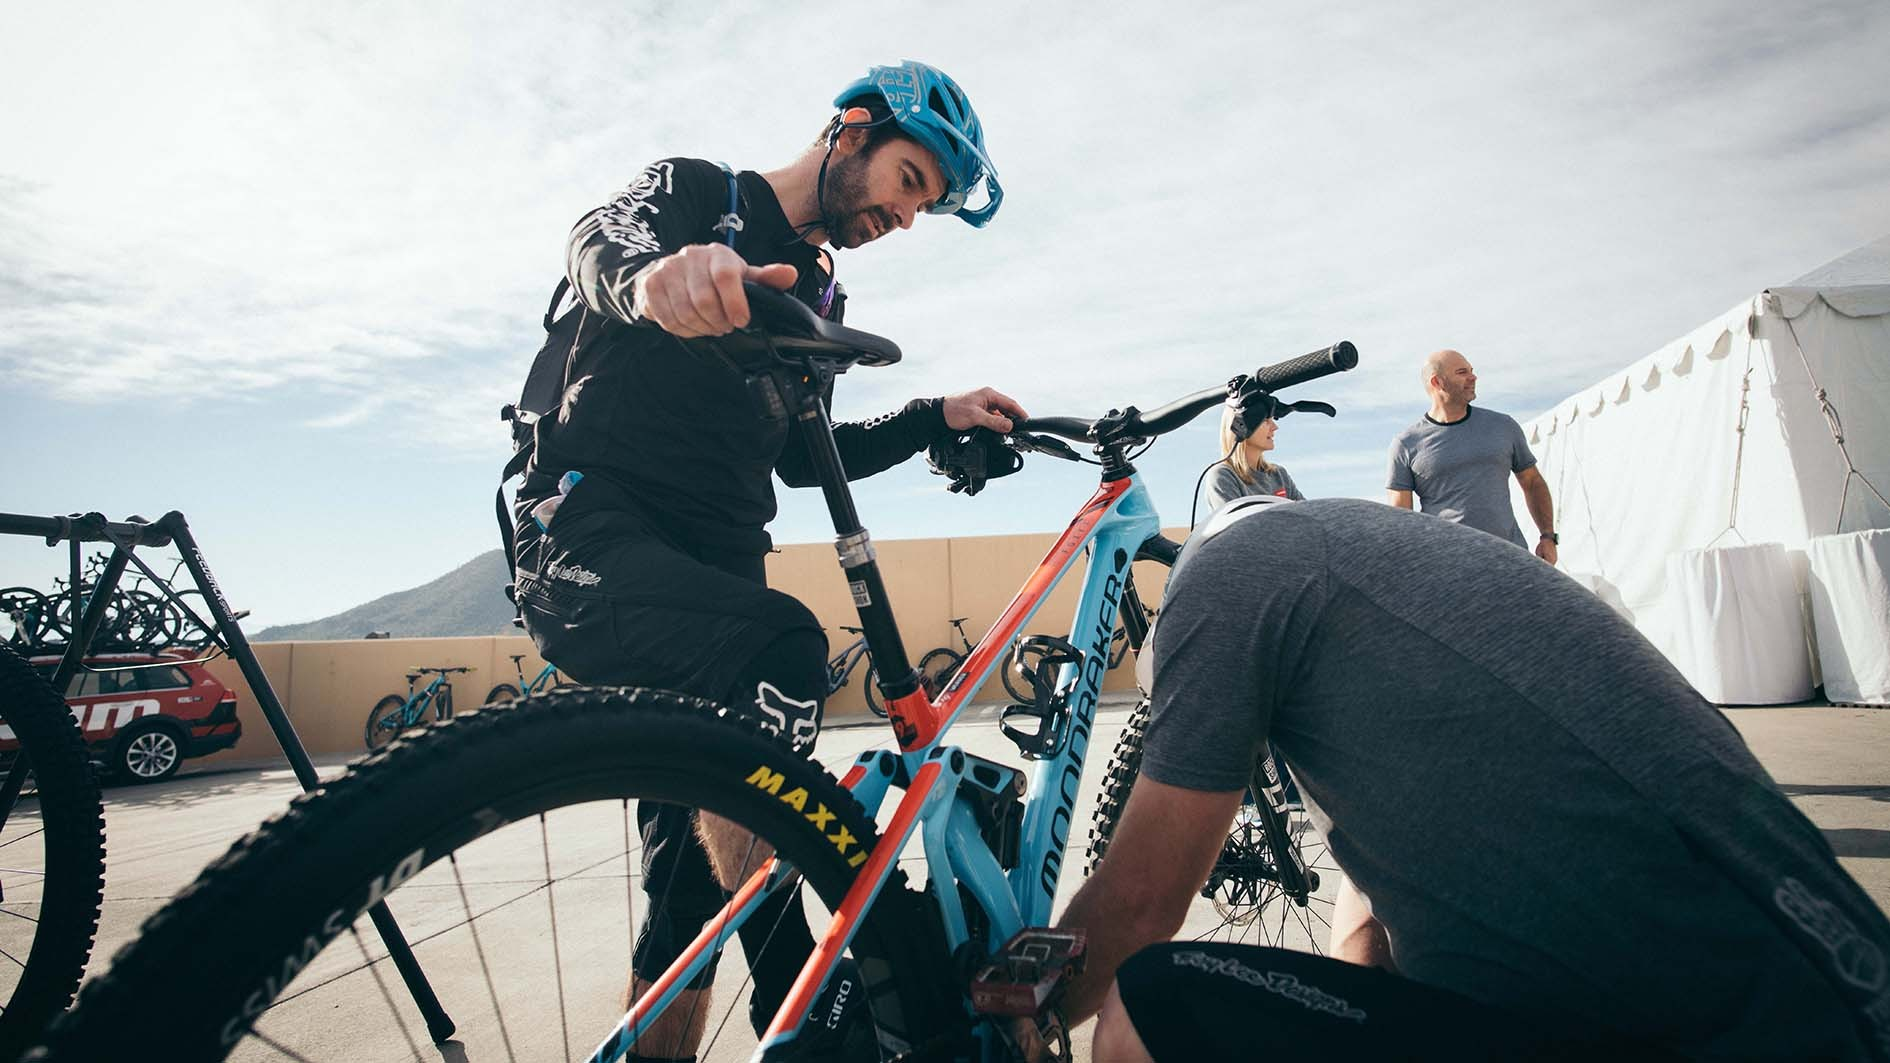 Set up is reassuringly simple which is a big plus. Here Chris Hilton from SRAM and Rob do some last minute tinkering before hitting the trails